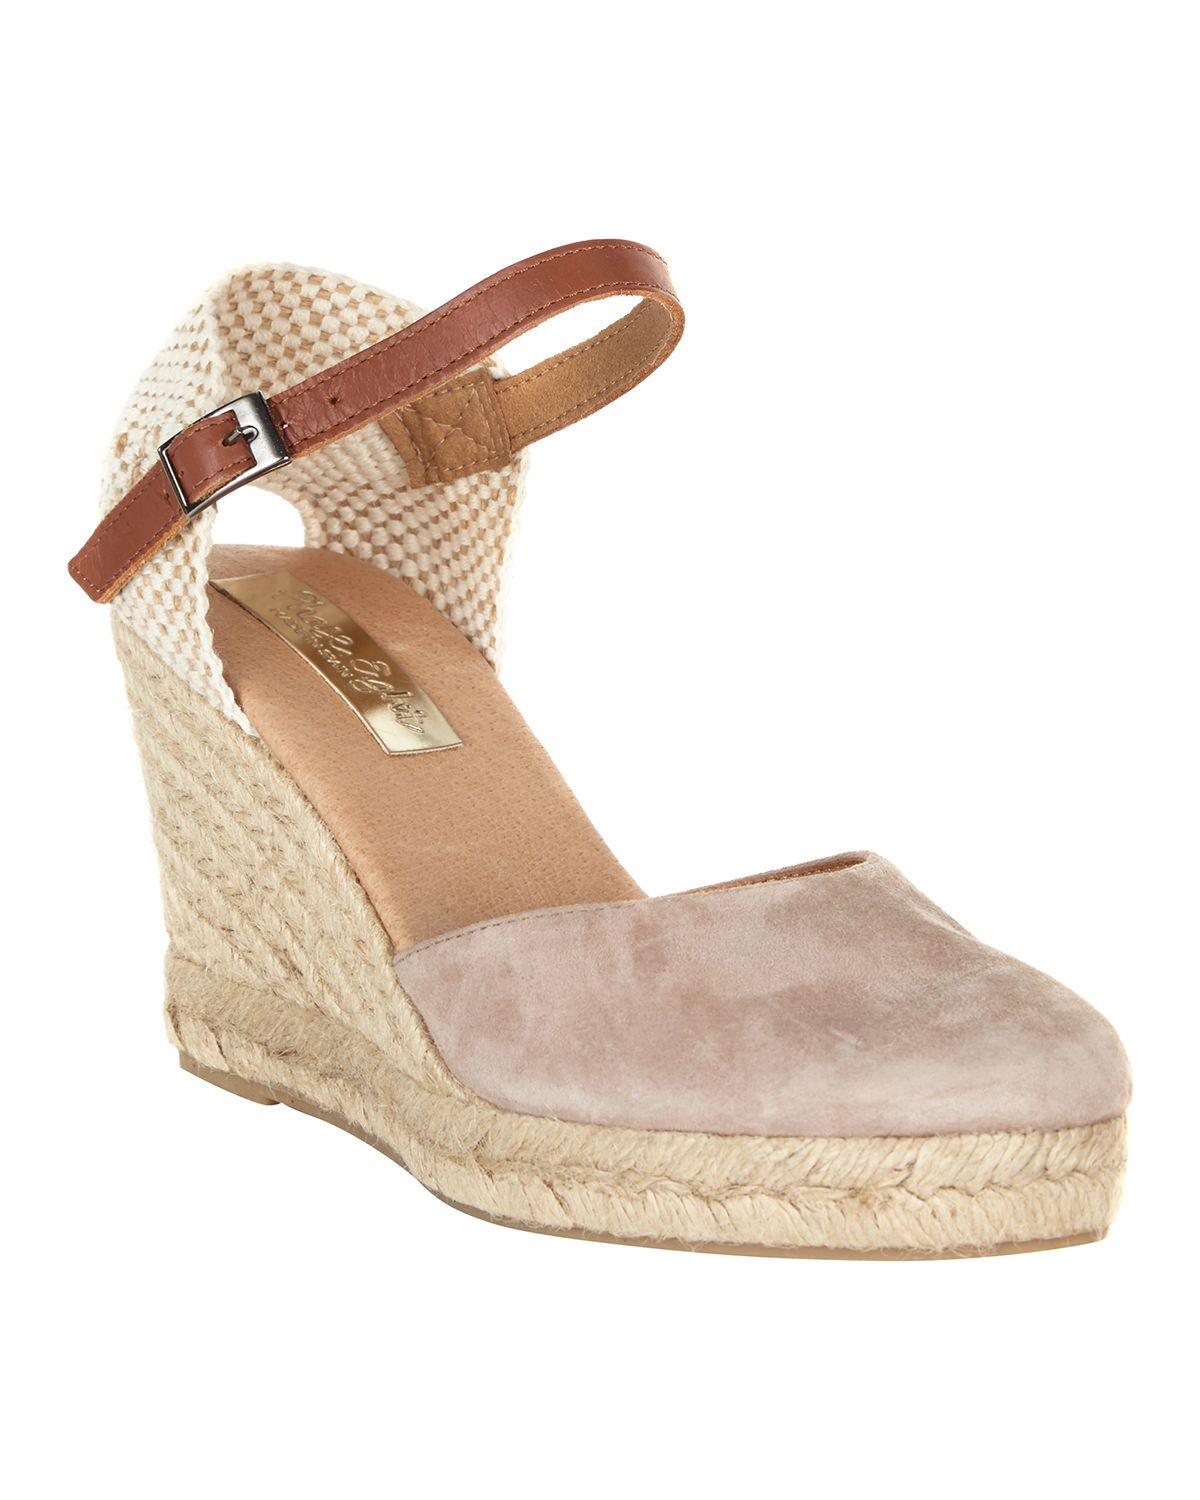 A stripe detail espadrille wedge with a leather look ankle strap